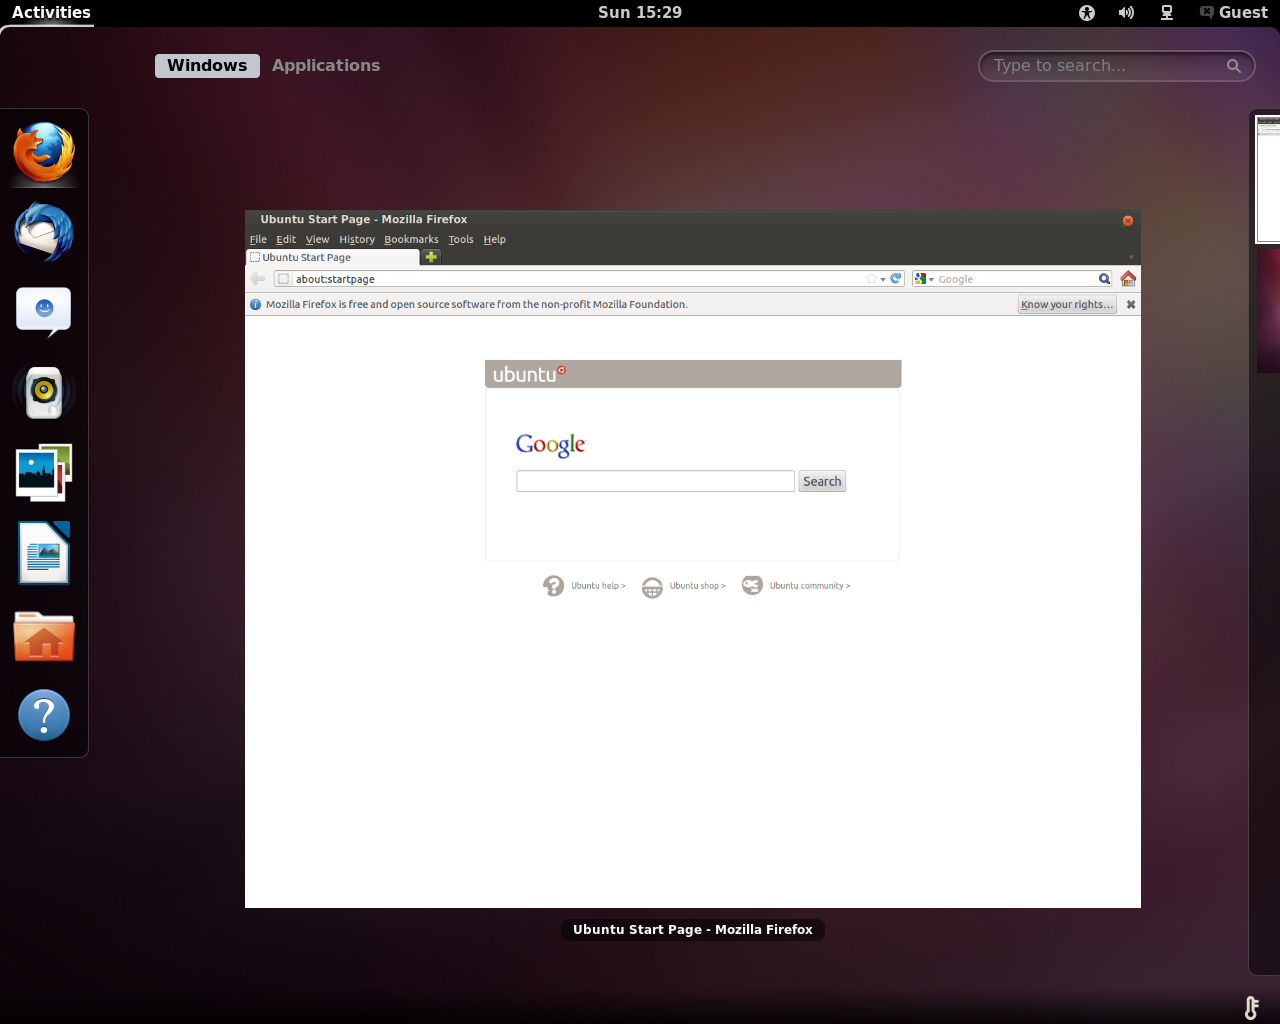 https://bugs.launchpad.net/ubuntu/+source/unity/+bug/871764/+attachment/2981797/+files/gnome-3-ltr.png